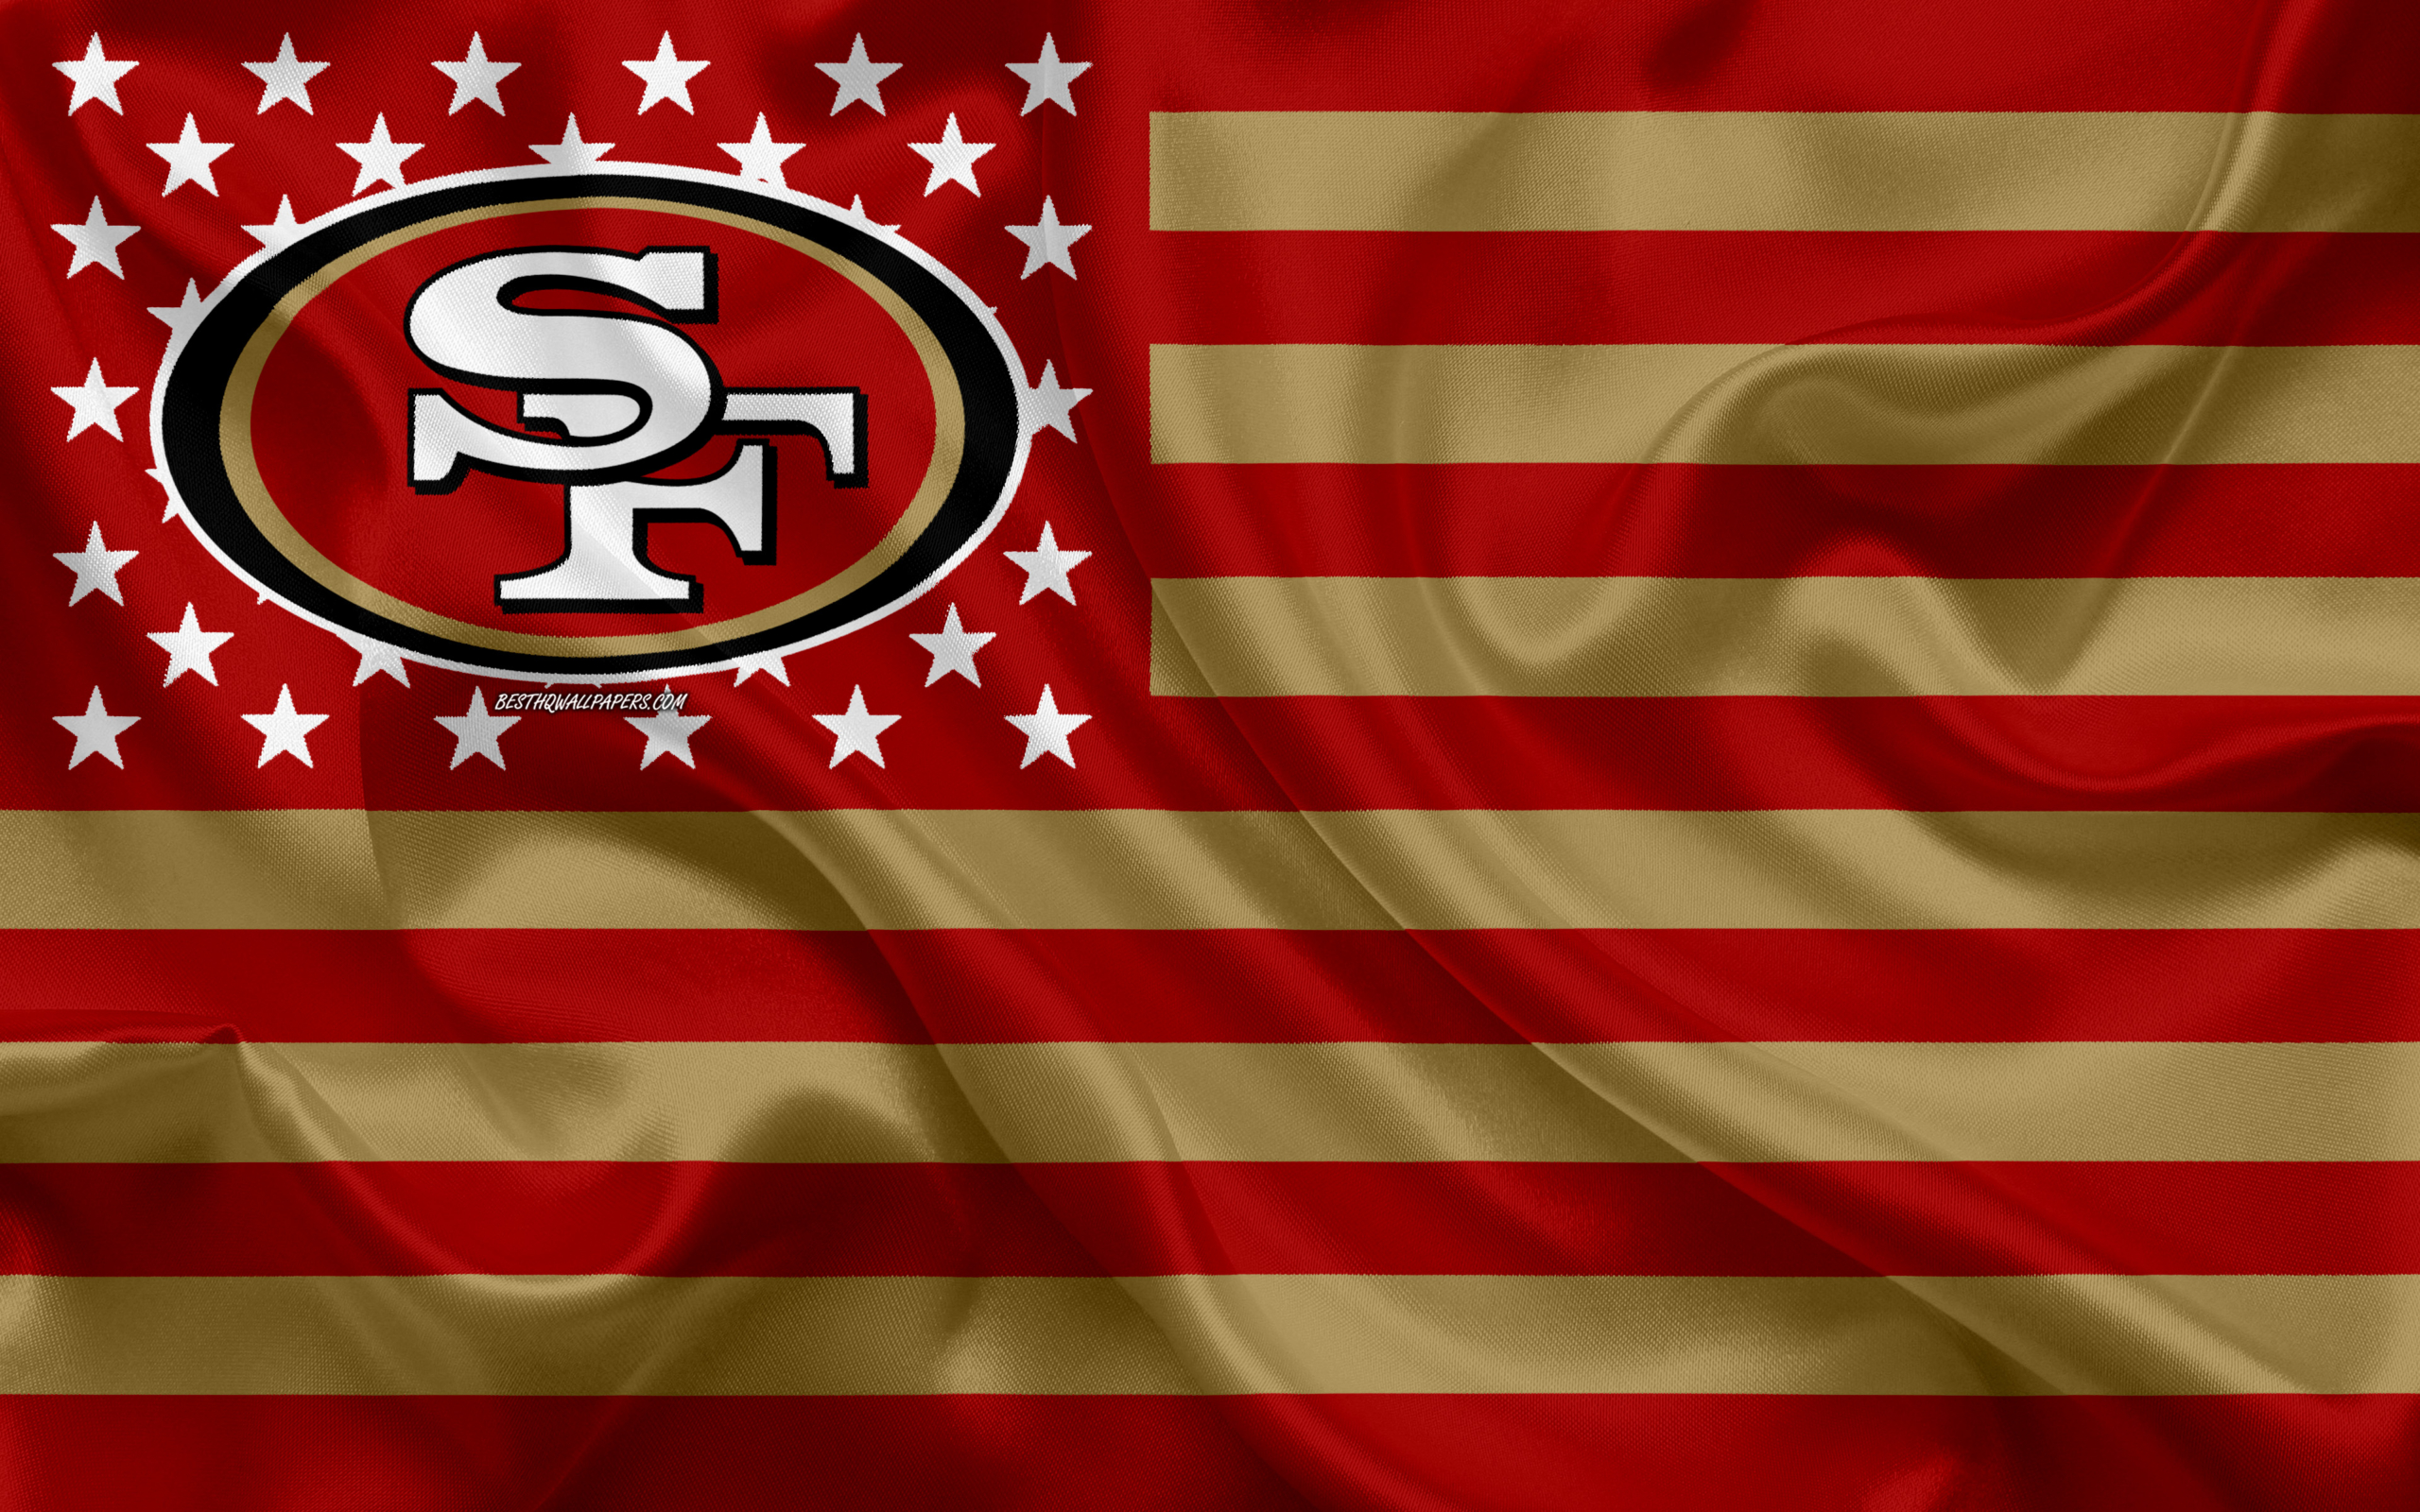 A Look at the Best 49ers Wallpaper Designs